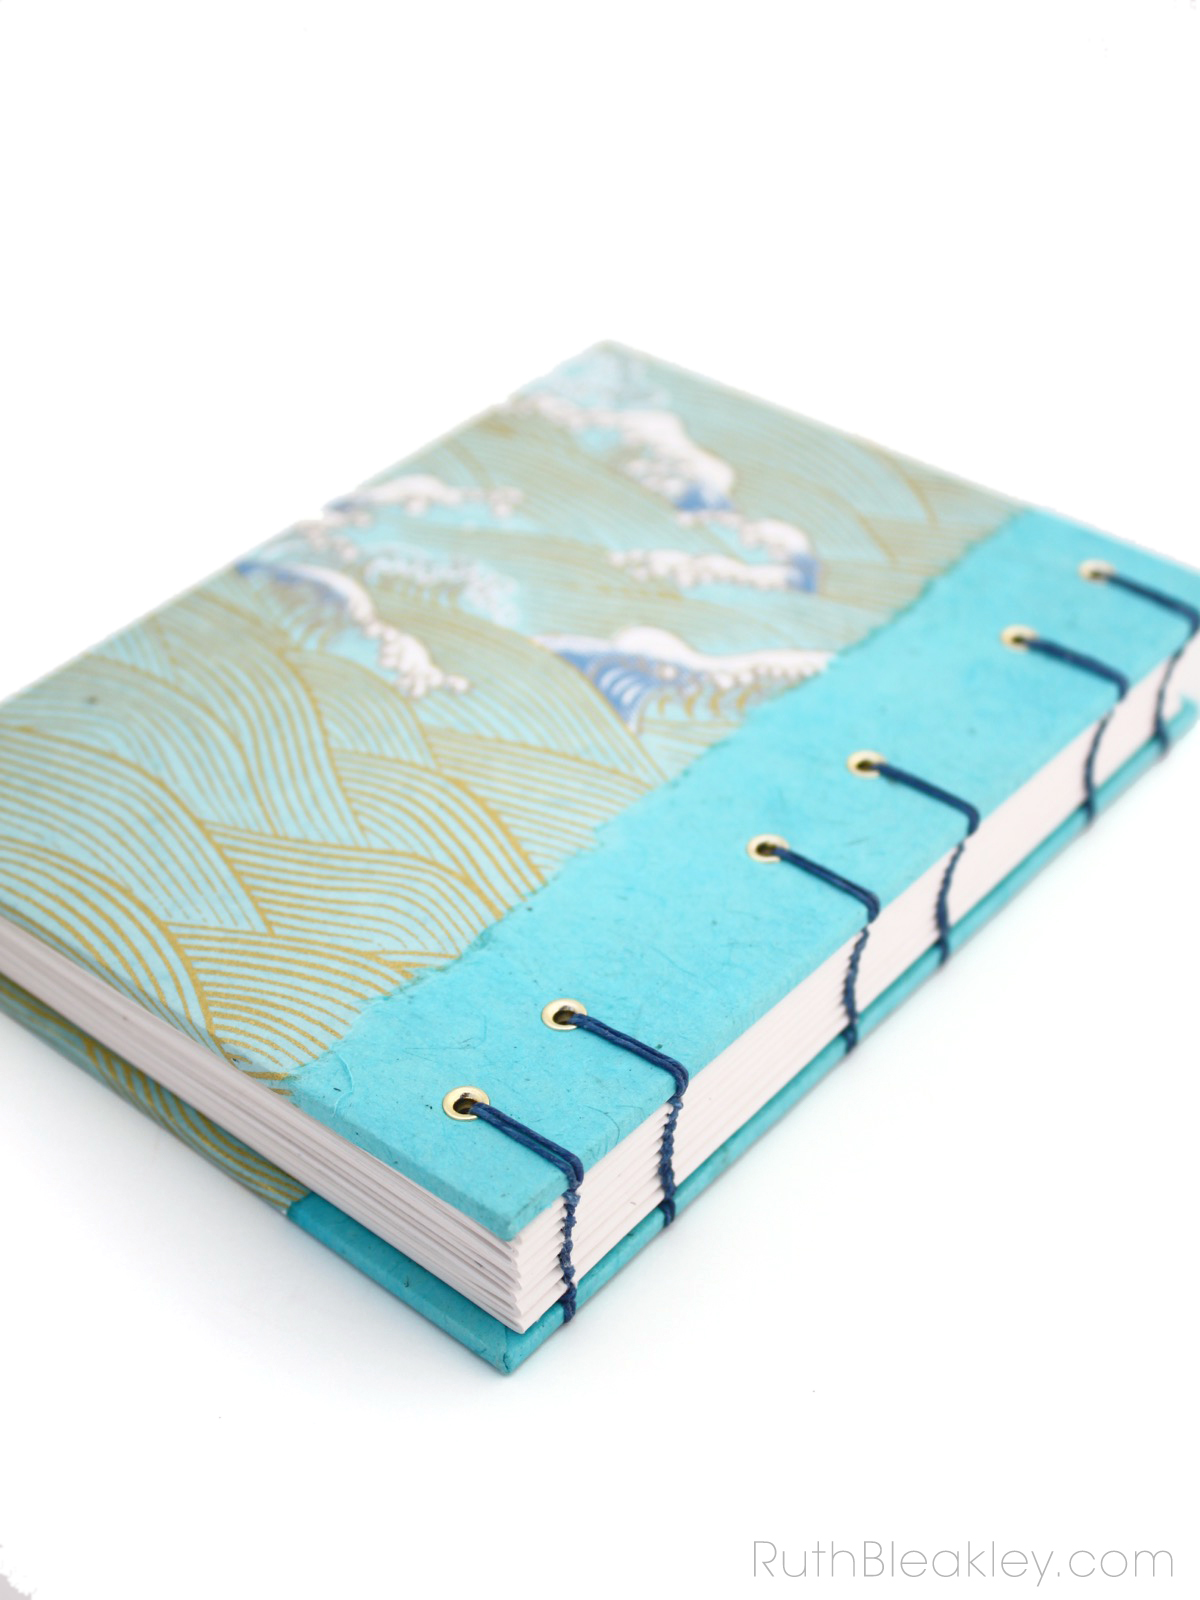 Waves journal by Ruth Bleakley with coptic stitch binding - 2